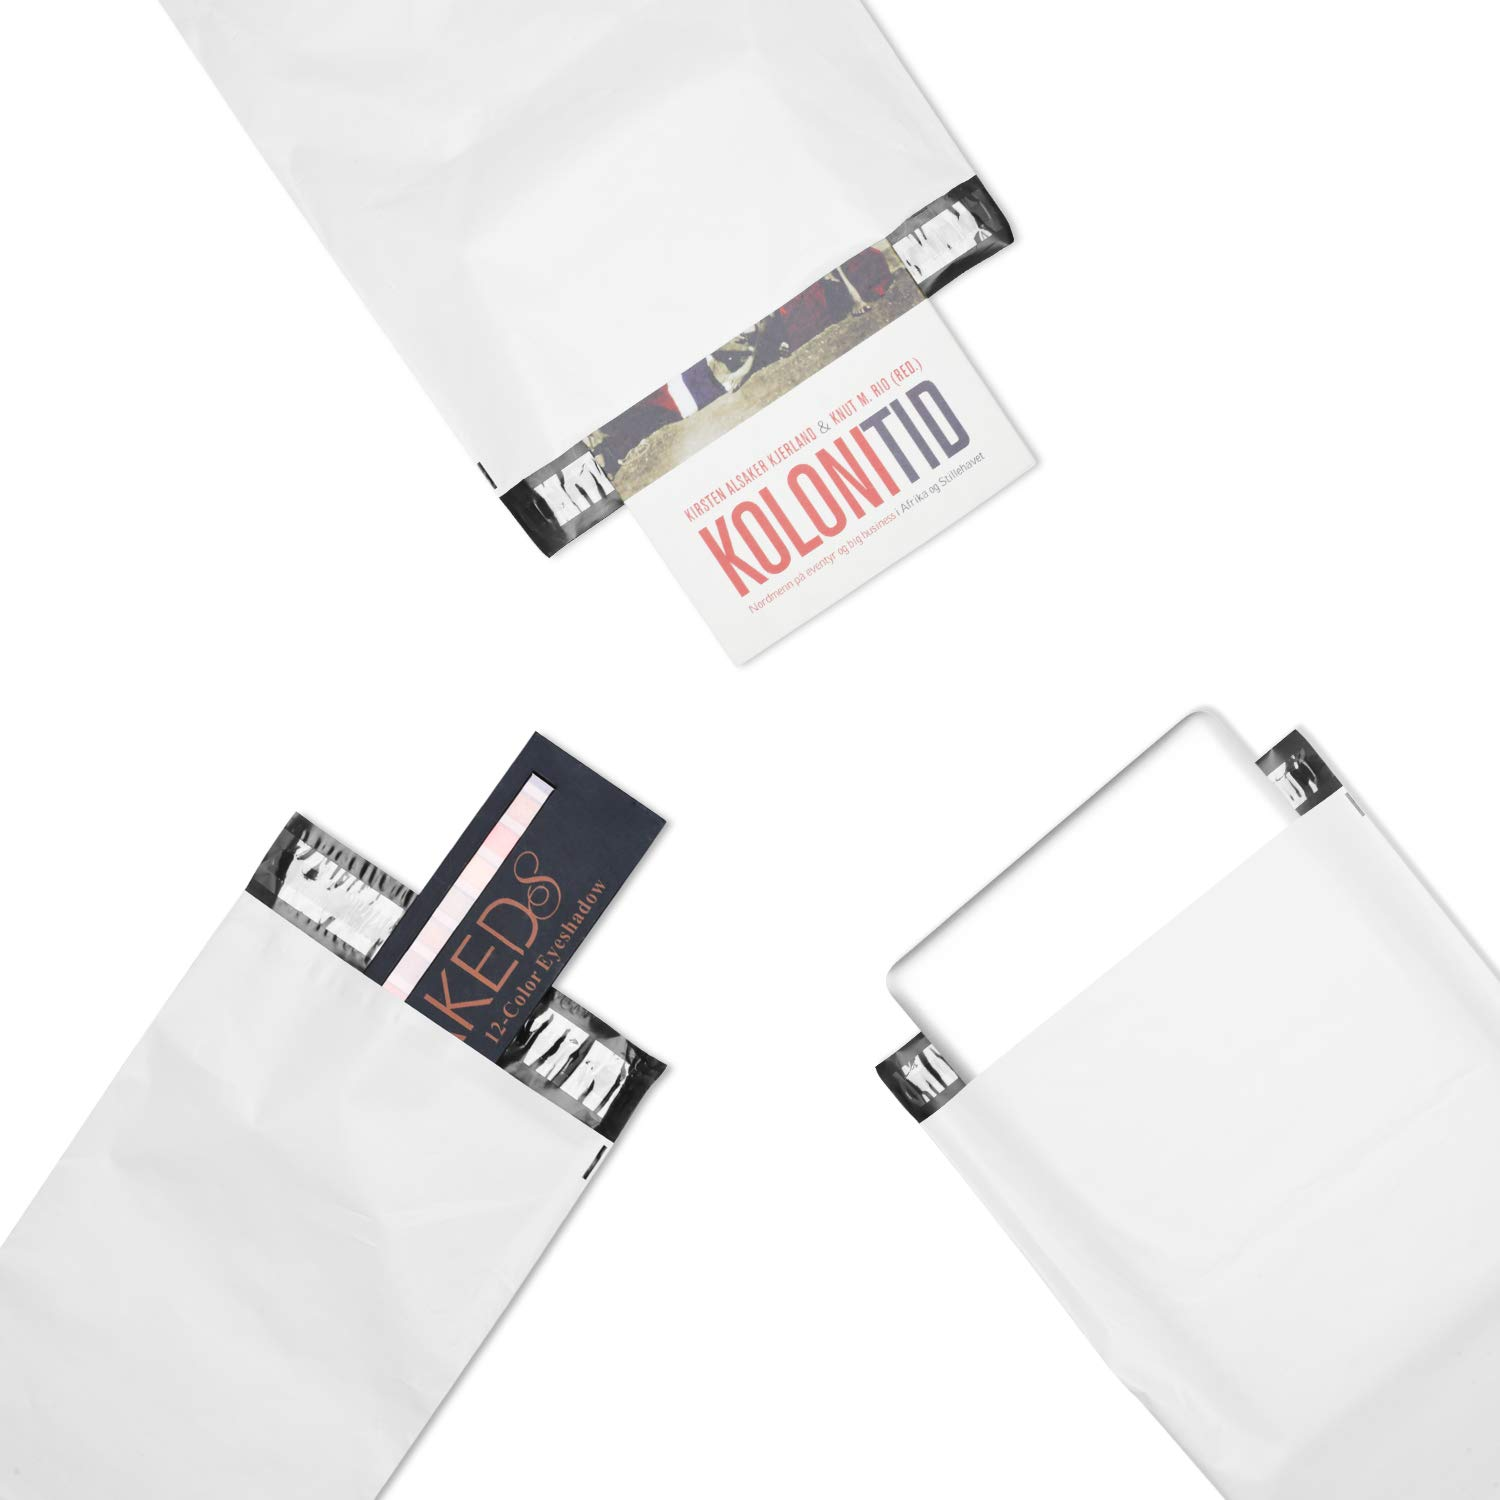 Metronic 200 7.5 x 10.5 Poly Mailer Envelopes Shipping Bags with Self Adhesive, Waterproof and Tear-Proof Postal Bags&White (White, 200) by Metronic (Image #4)